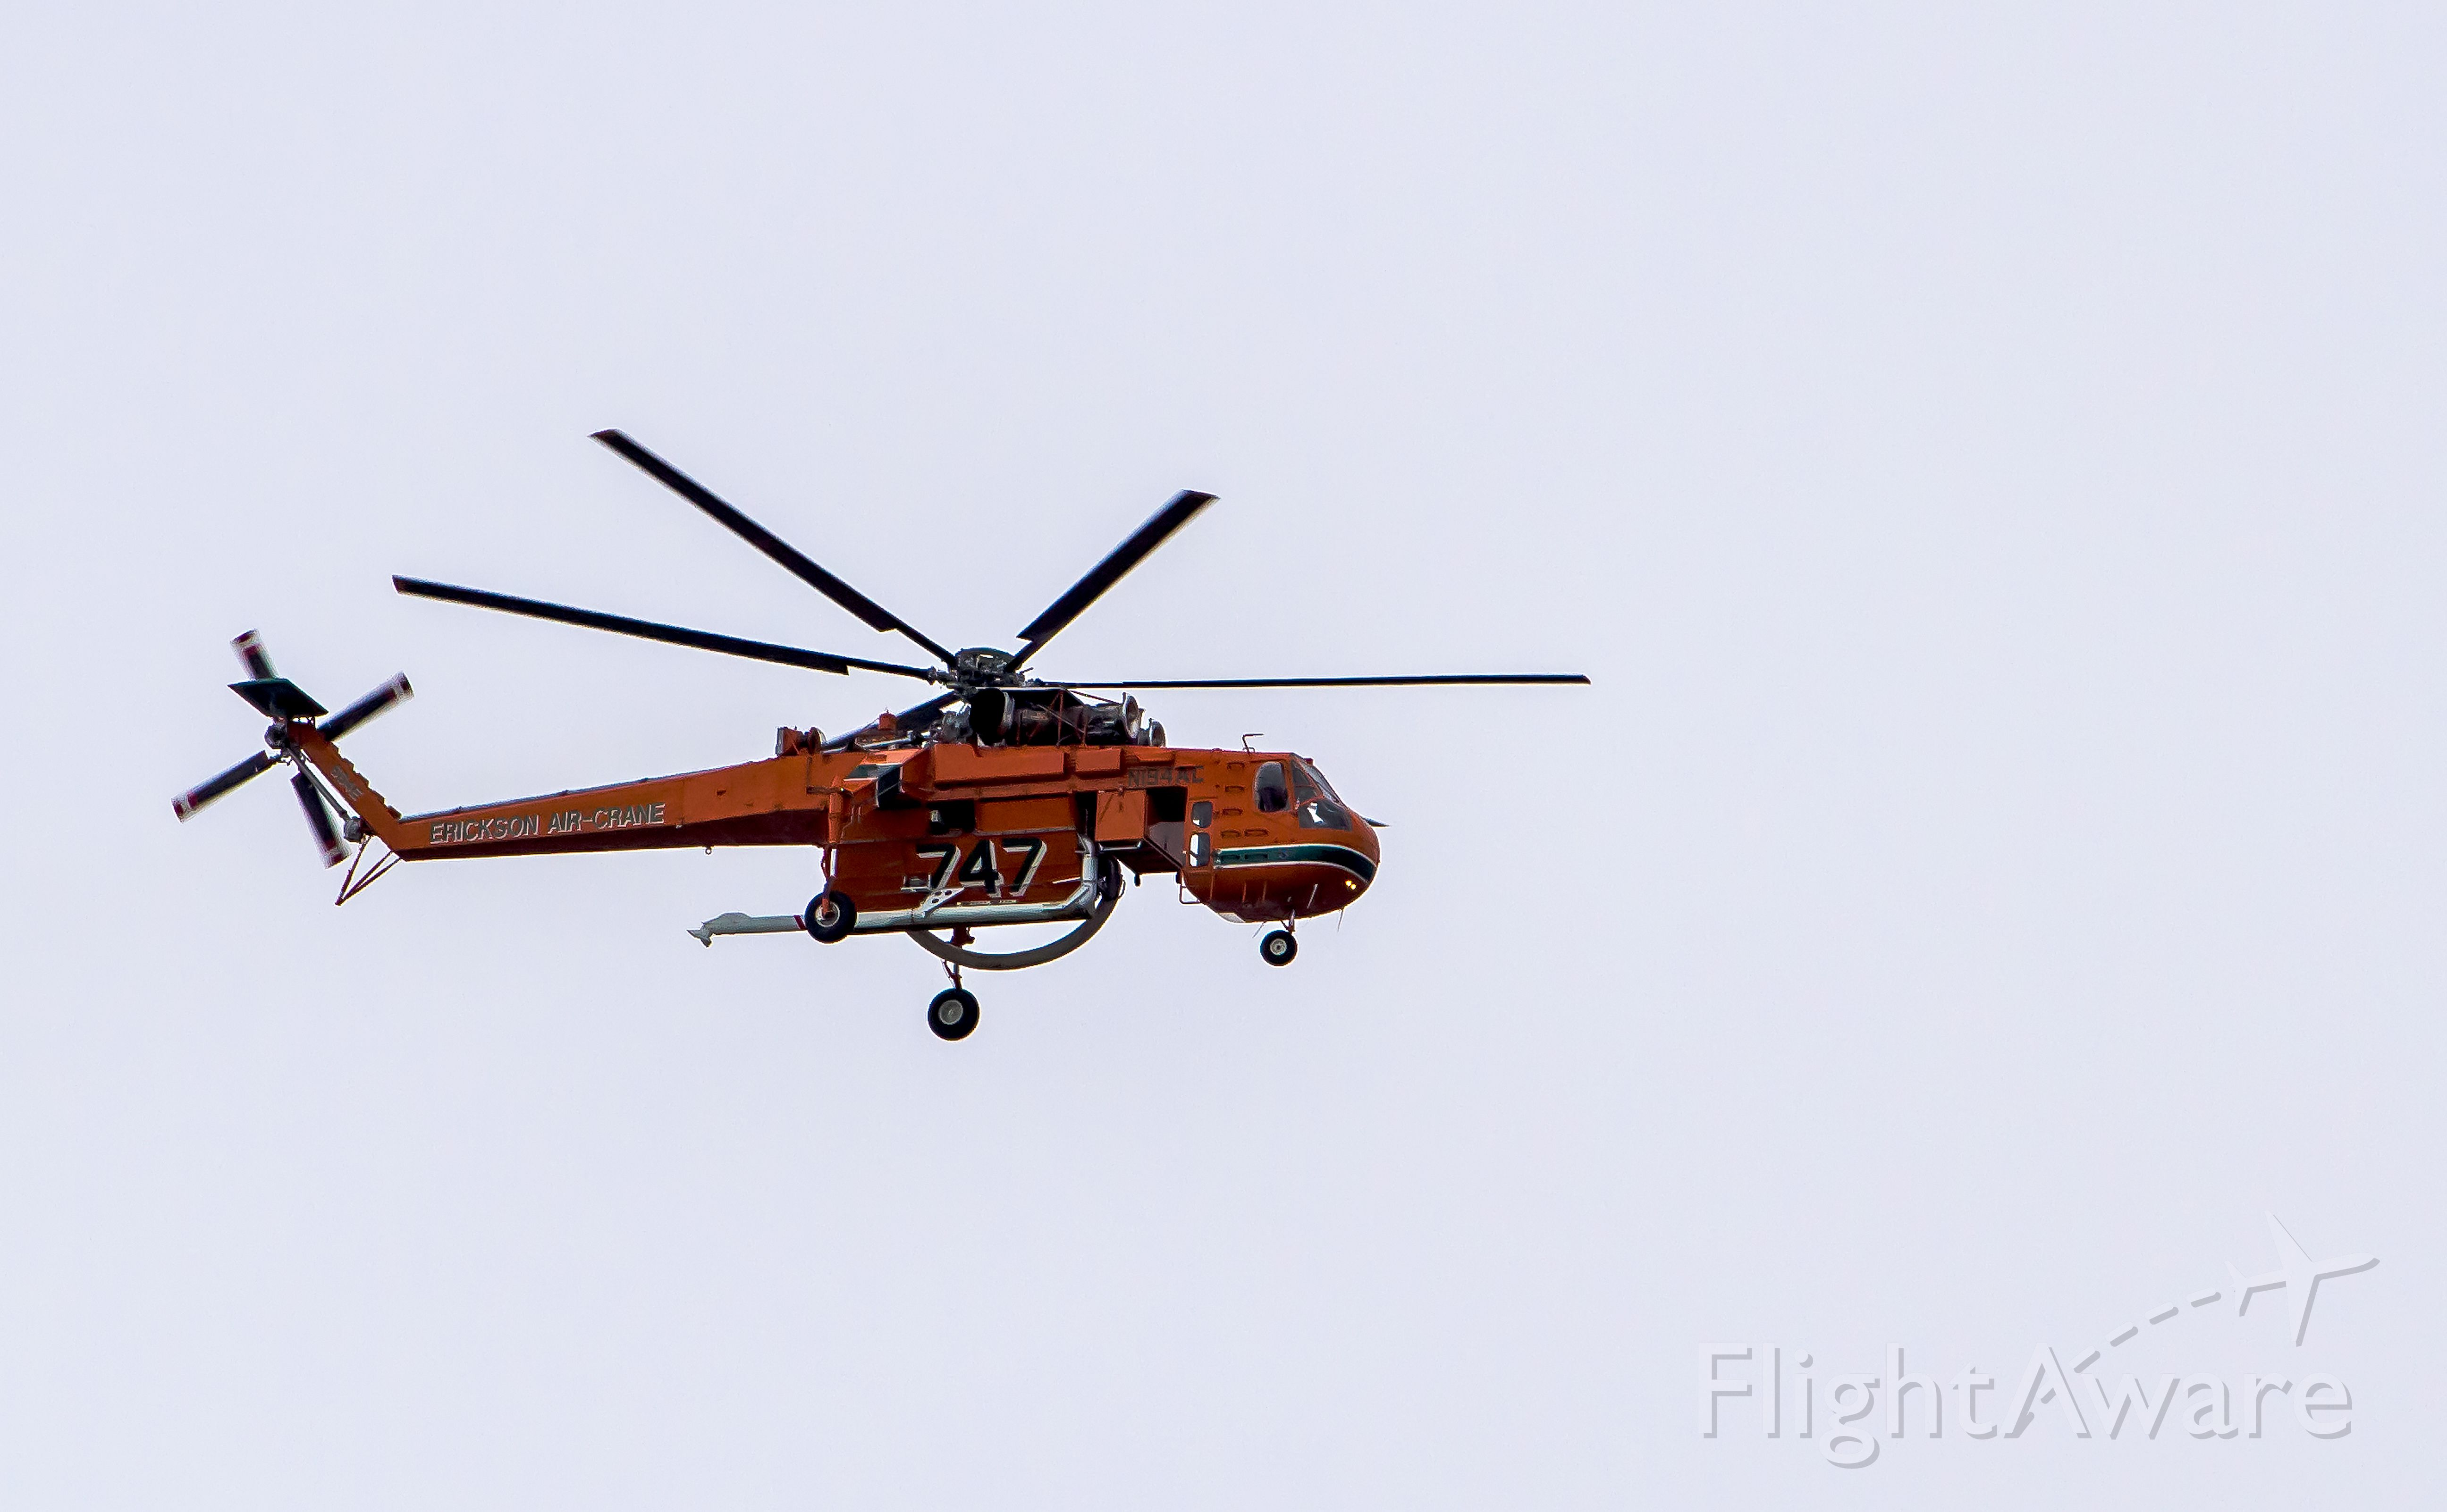 Sikorsky CH-54 Tarhe (N194AC) - Sikorsky S-64 Skycrane northbound along the LA River west of Long Beach Airport on the morning of 4-24-2015.  Owned by Erickson Incorporated, this Fire Fighting Helicopter is probably under contract with a government agency for the upcoming 2015 fire season. An unusual and beautiful sight.  I could hear it coming for 5 minutes!